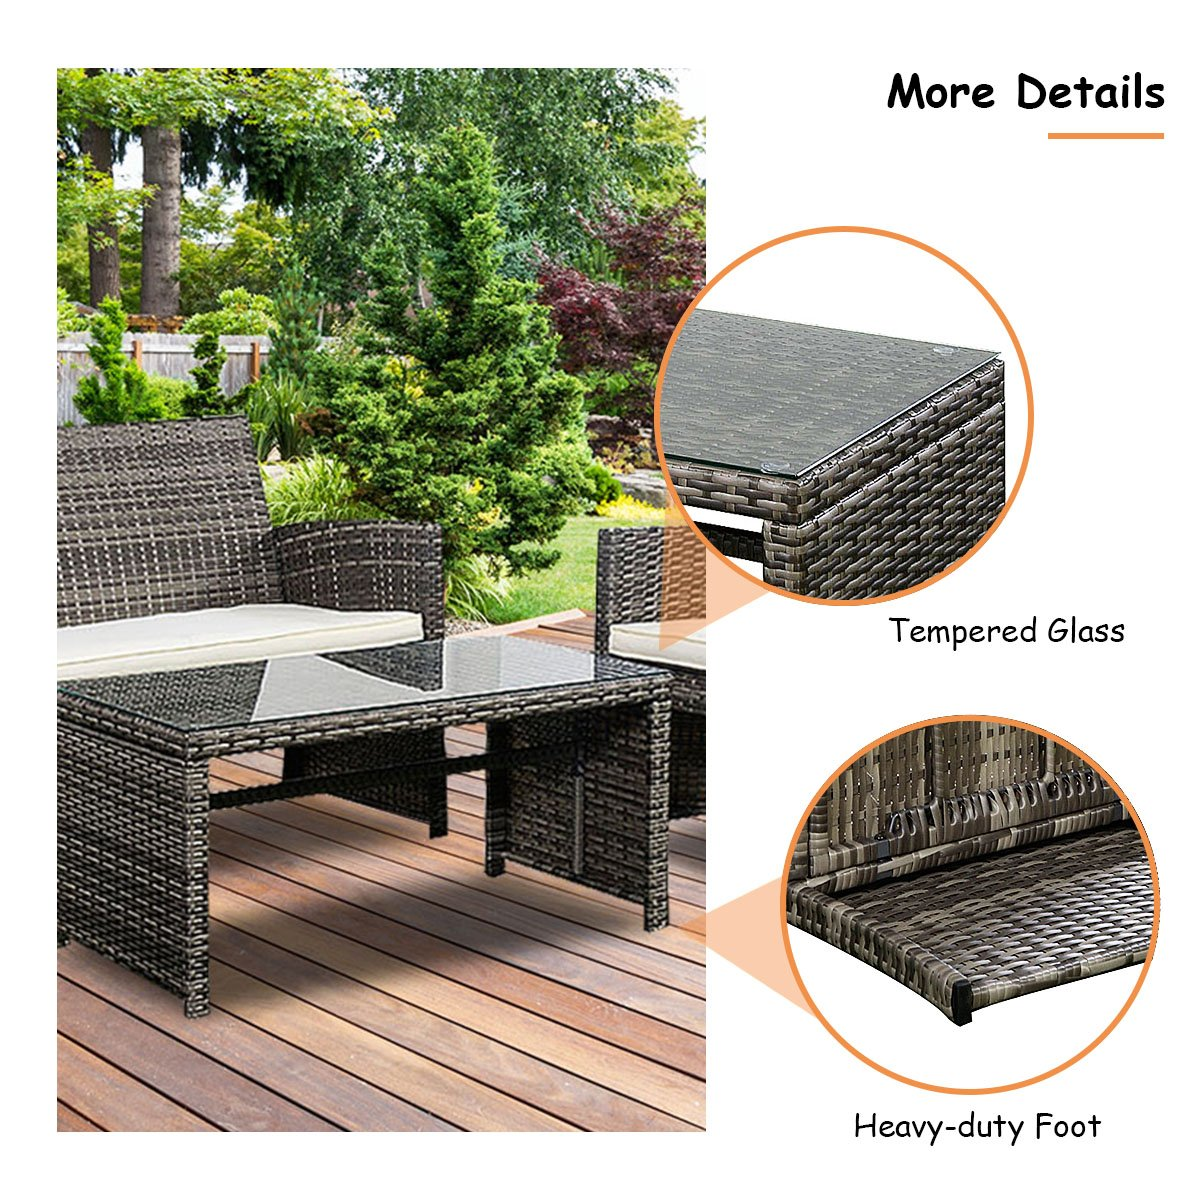 Goplus 4 PC Rattan Patio Furniture Set Garden Lawn Sofa Cushioned Seat Wicker Sofa (Mix Gray) by Goplus (Image #5)